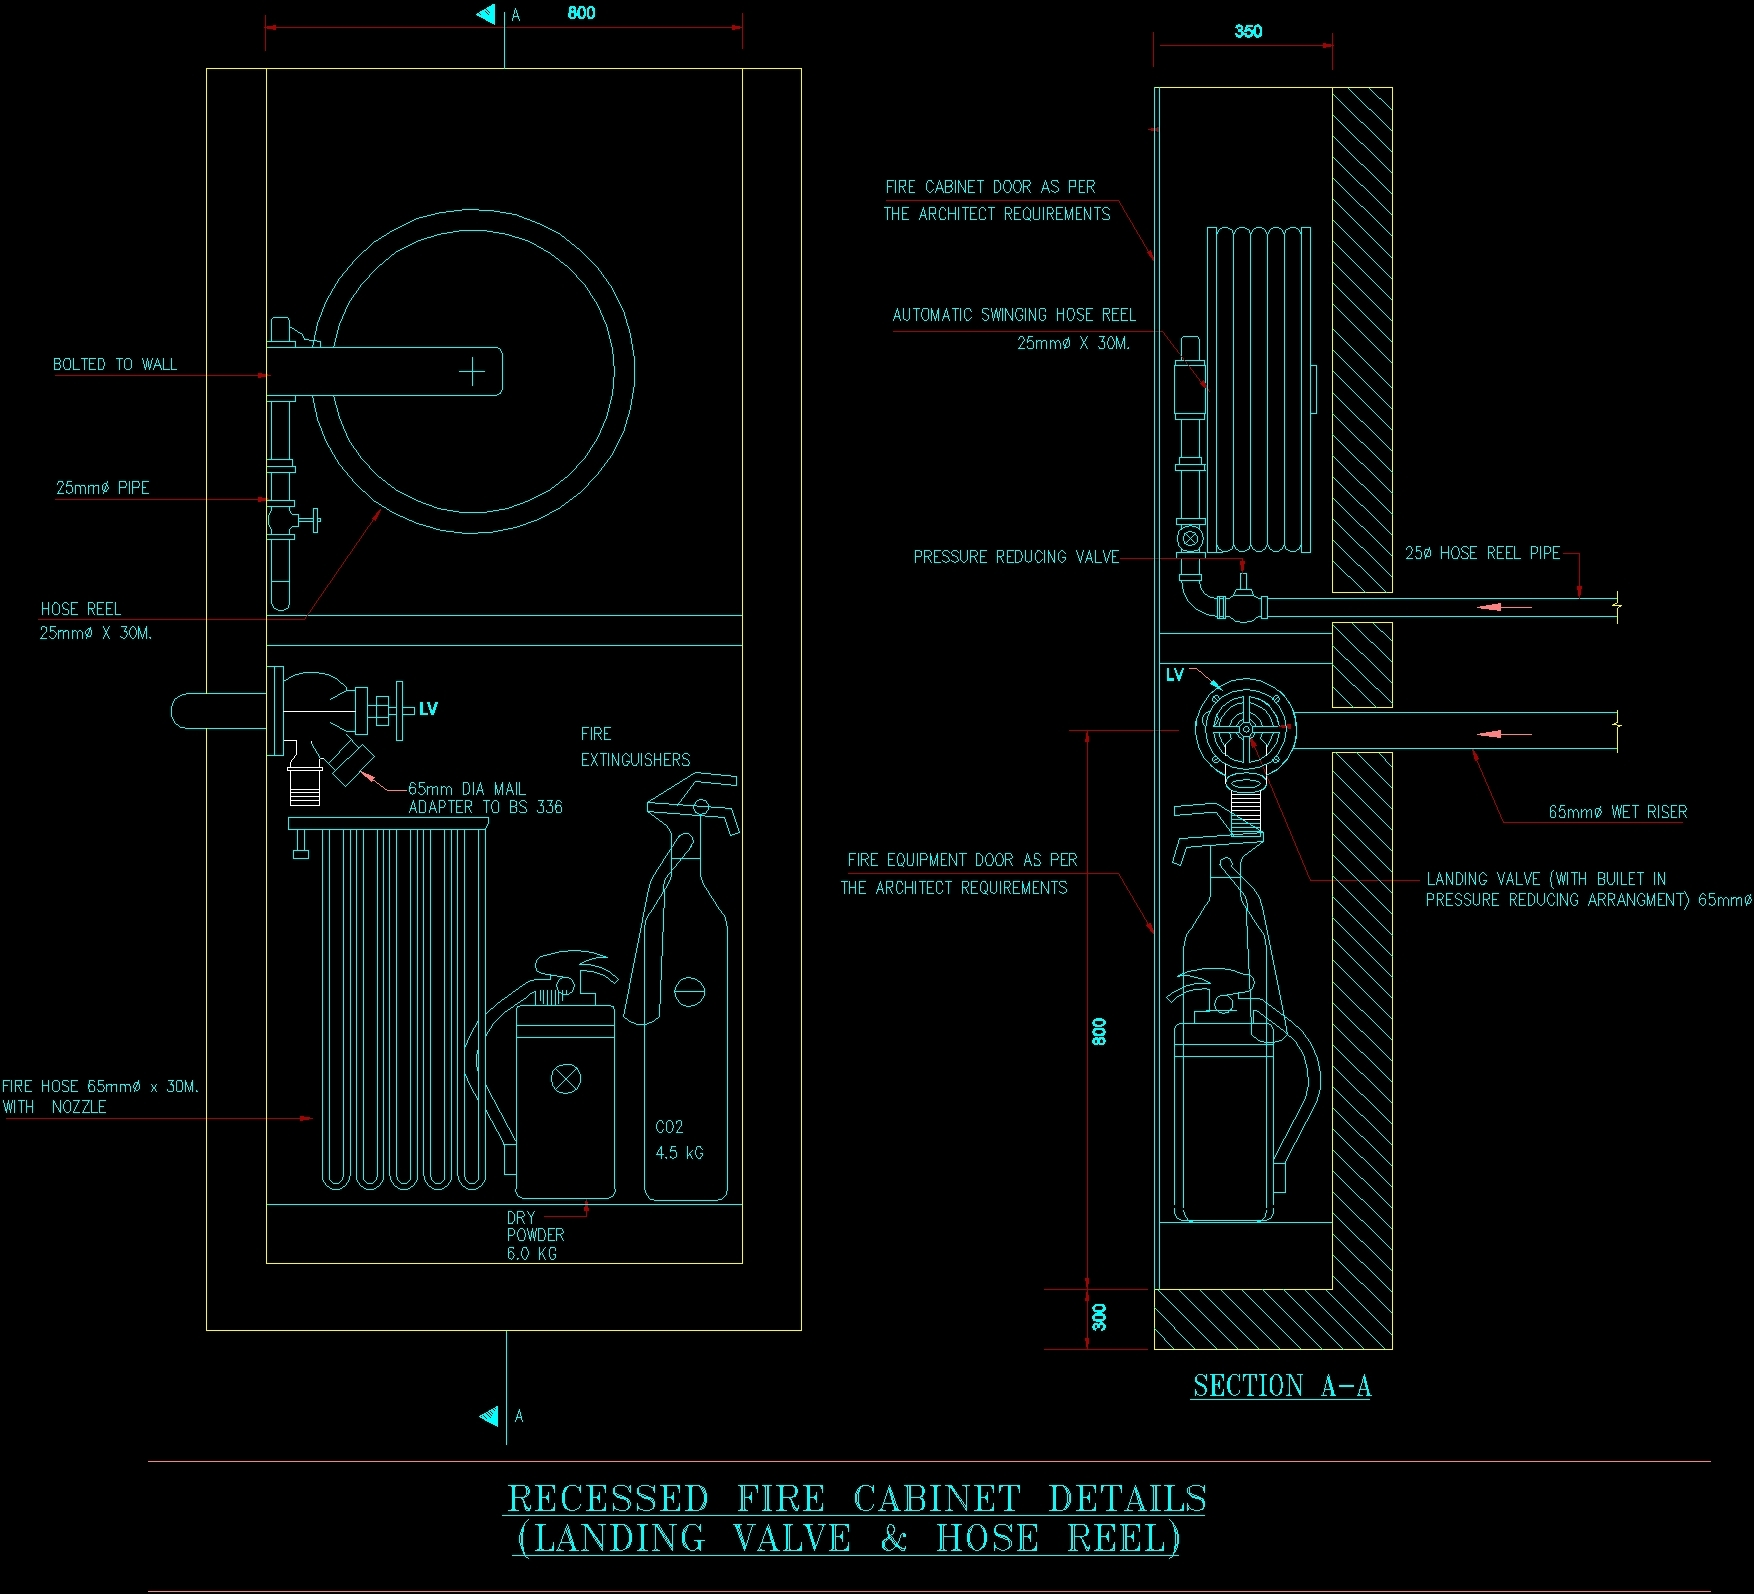 Electrical Plan Recessed Fire Cabinet Dwg Detail For Autocad Designs Cad